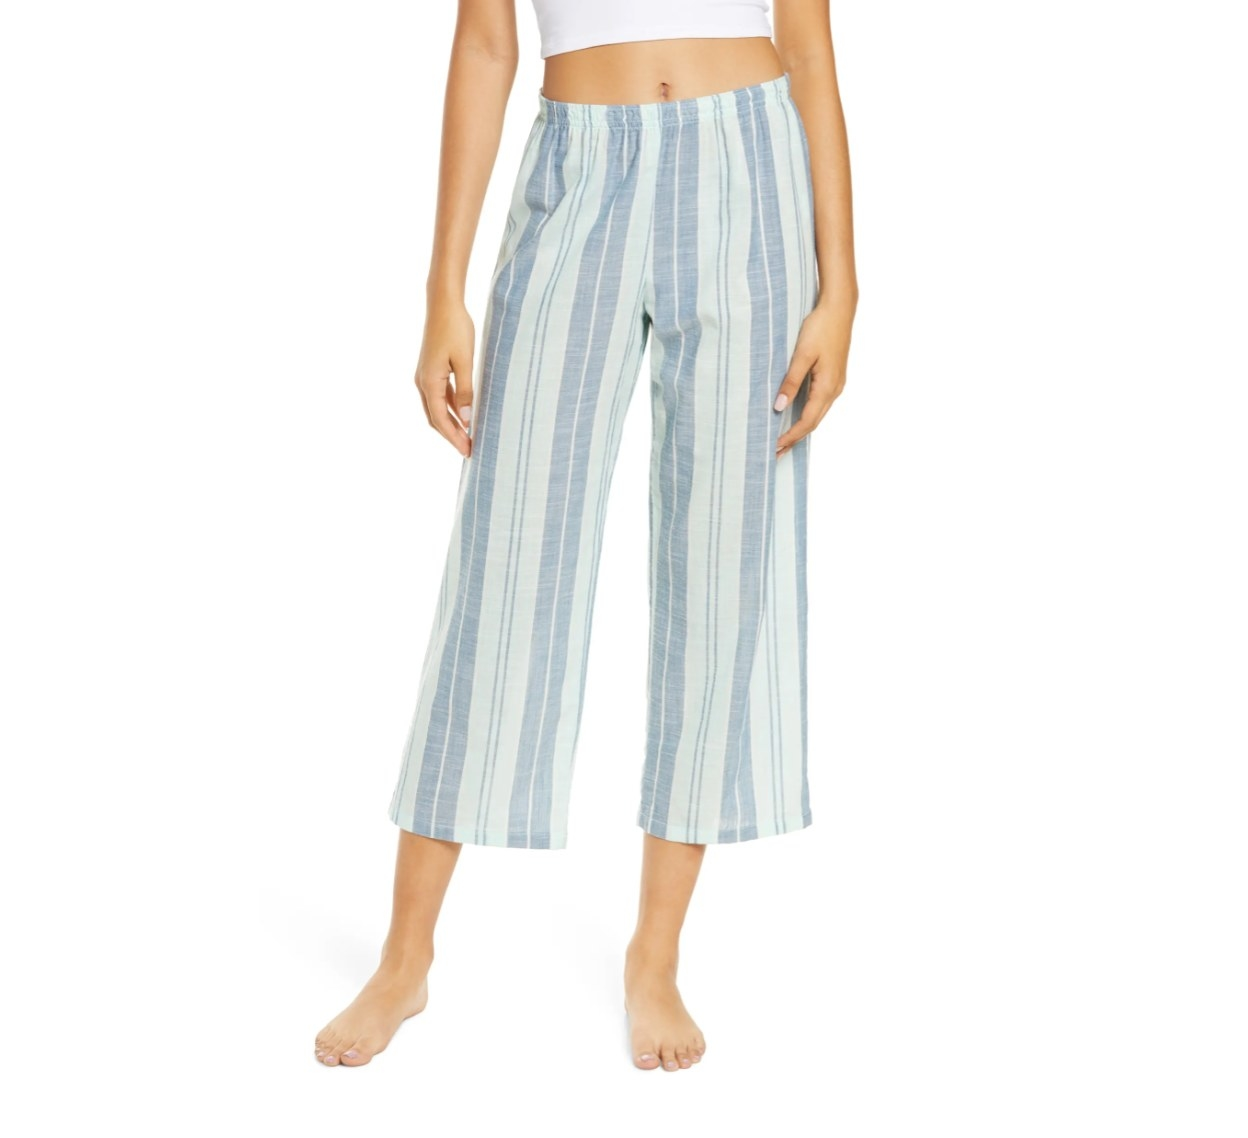 The pair of boyfriend woven cropped pants in green yucca emmy stripe